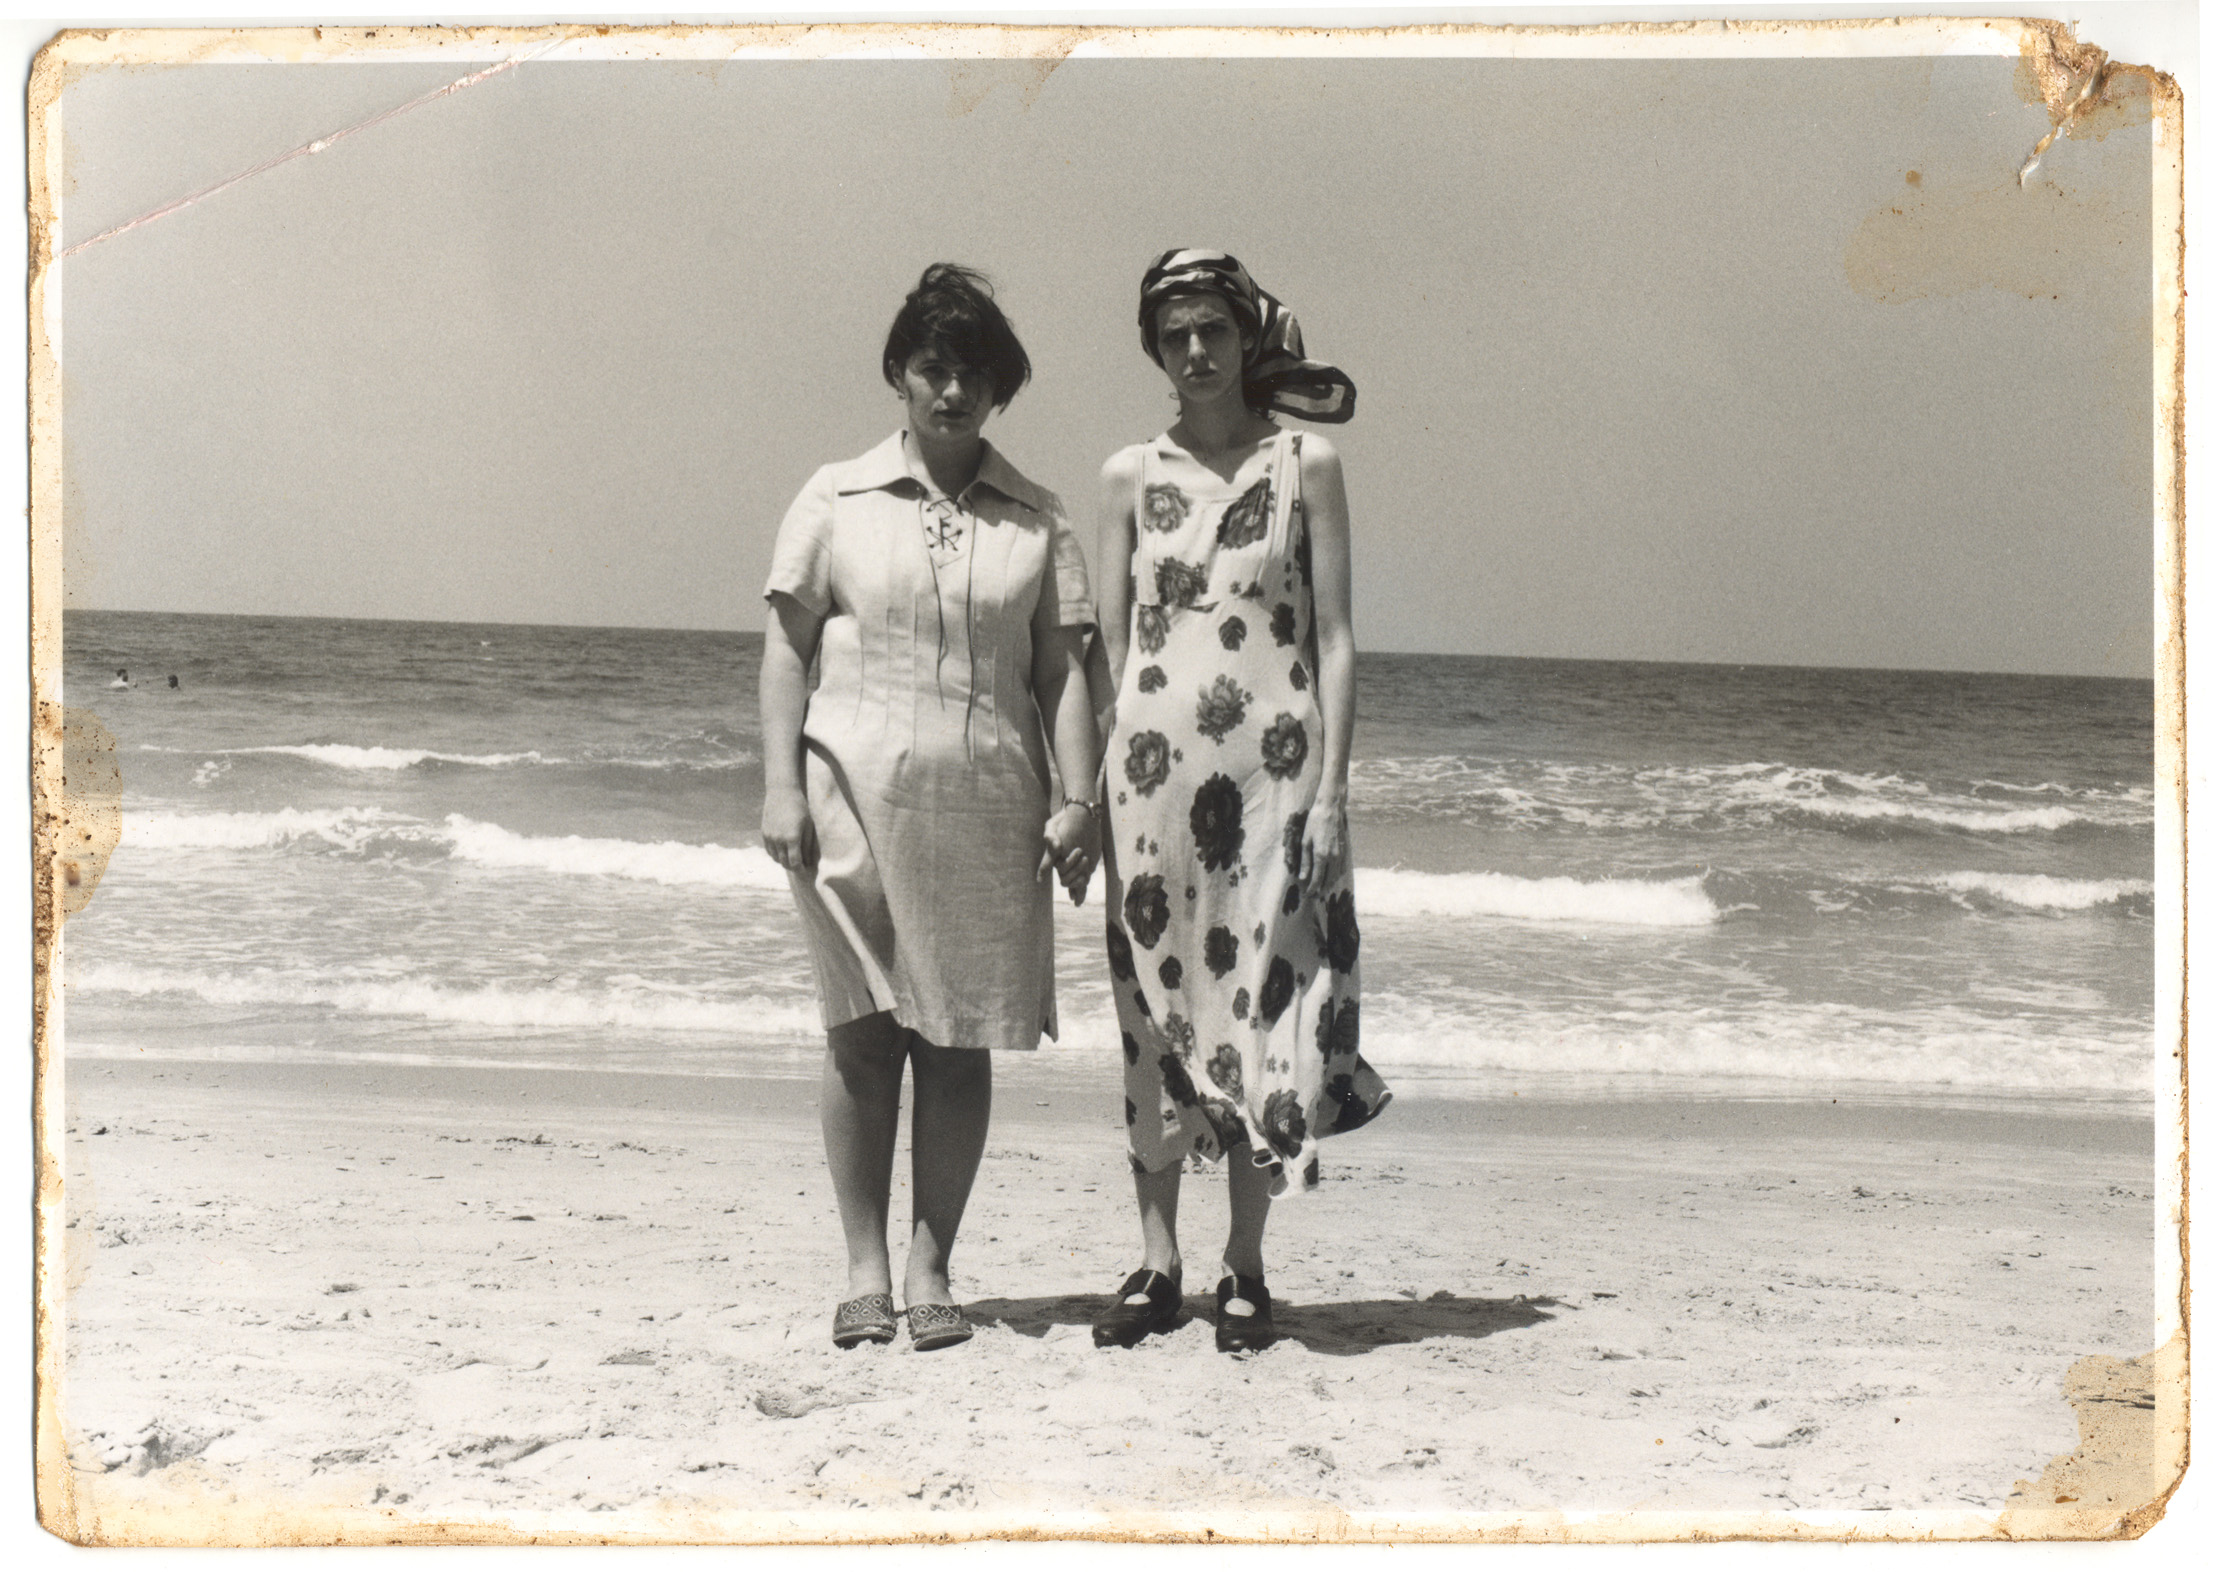 Justine Frank and her friend Fanja Hissin on the seashore of Tel Aviv, 1936